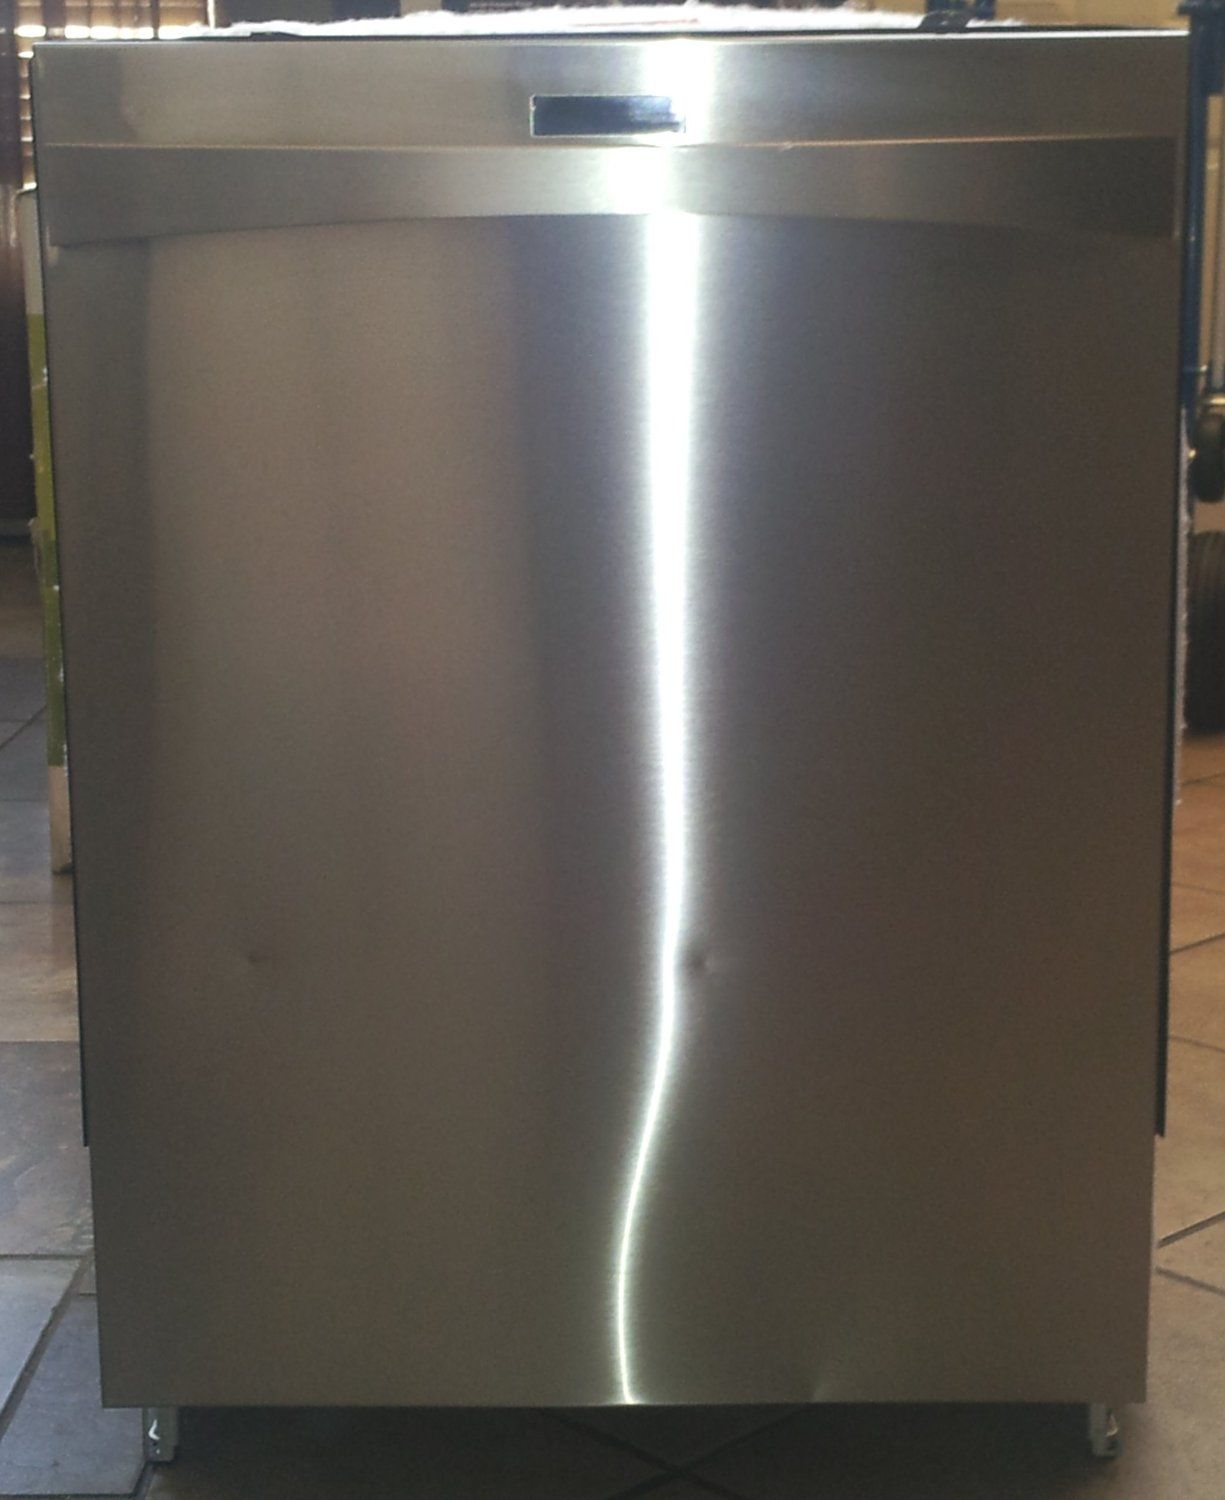 Kenmore Elite Dishwasher 13973 24 Built In W 360 Powerwashtm